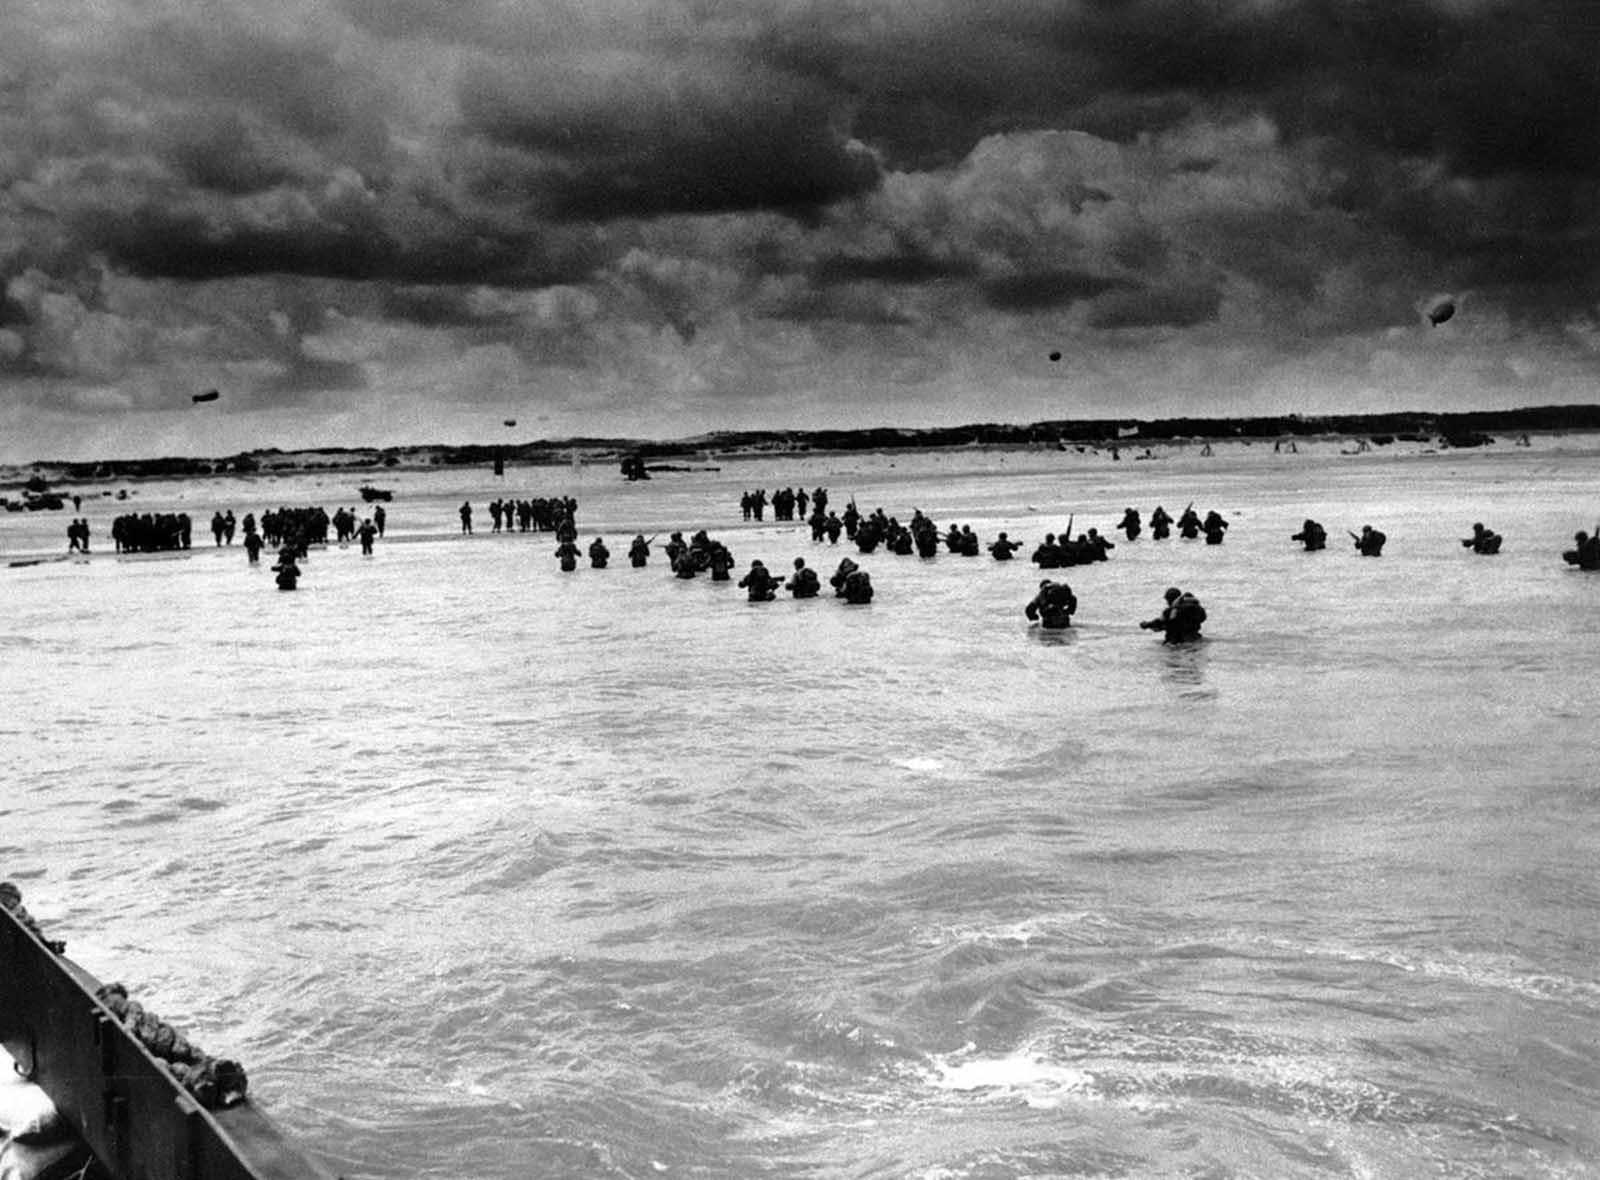 U.S. reinforcements wade through the surf as they land at Normandy in the days following the Allies' June 1944 D-Day invasion of France.